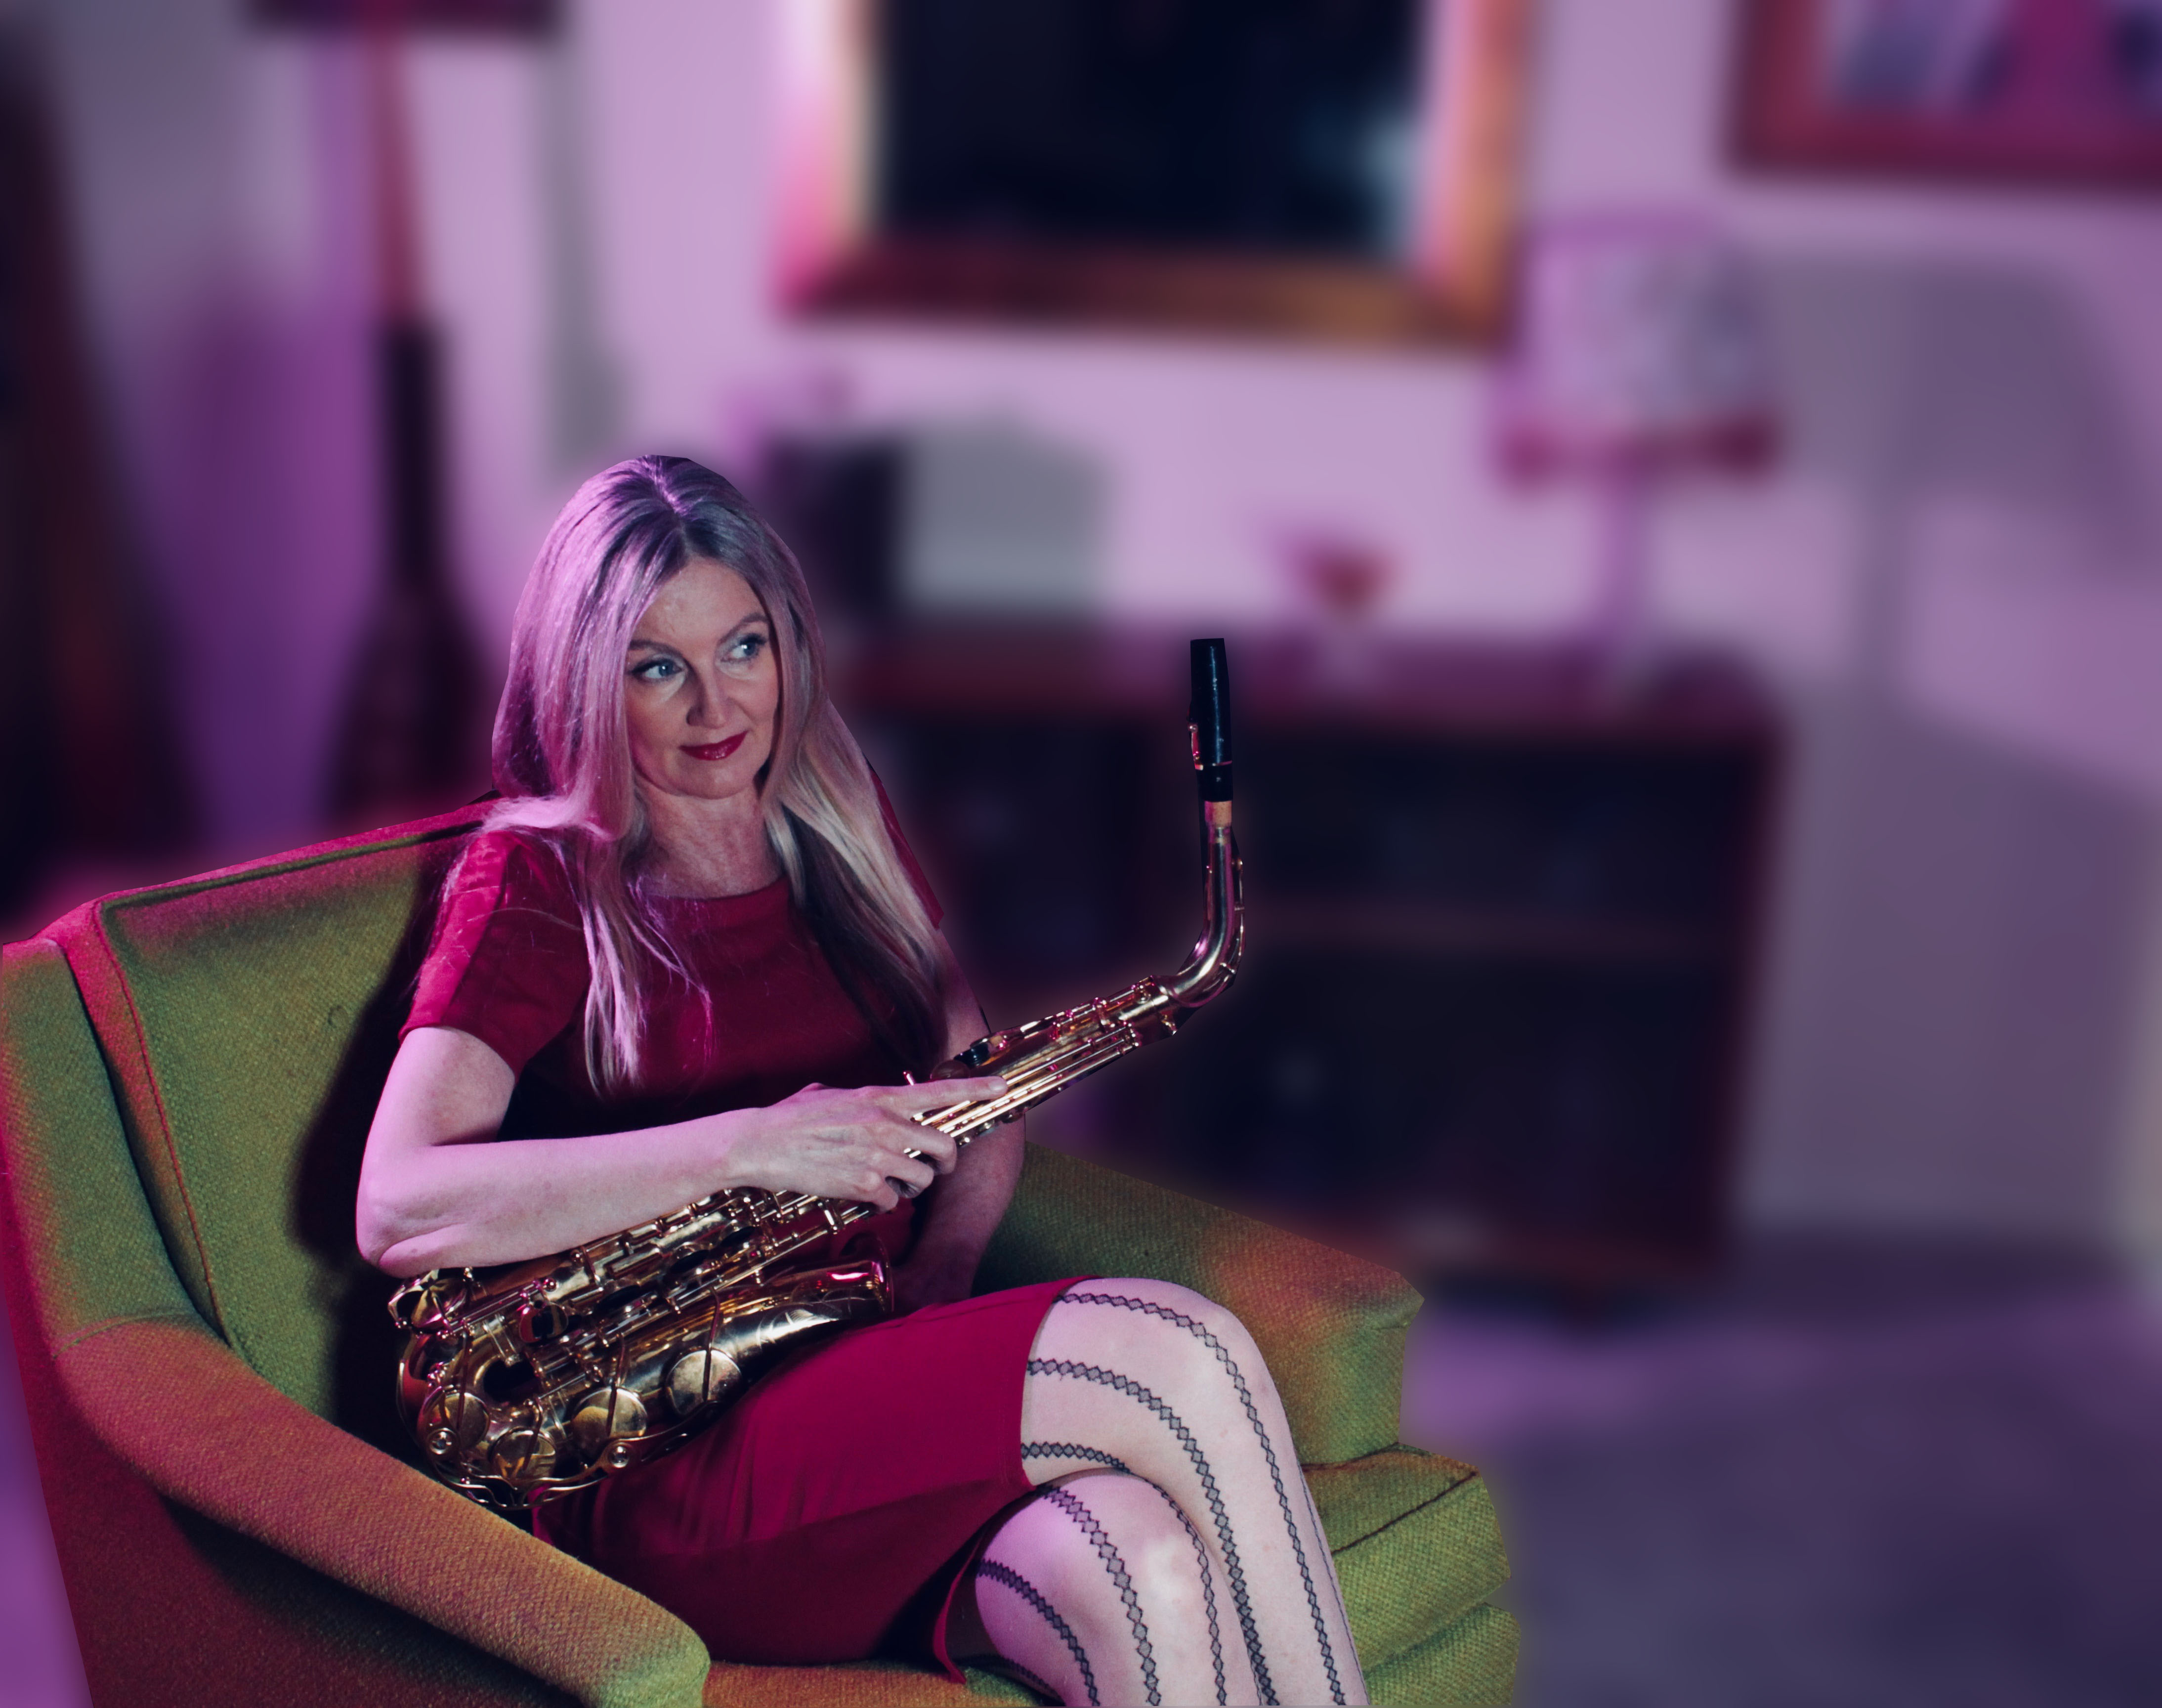 Escaping Reality and Soul Searching with a Compelling Jazz-Rock Fusion: Burgeoning Artist Person Natalie Unveils Inspiring New Album